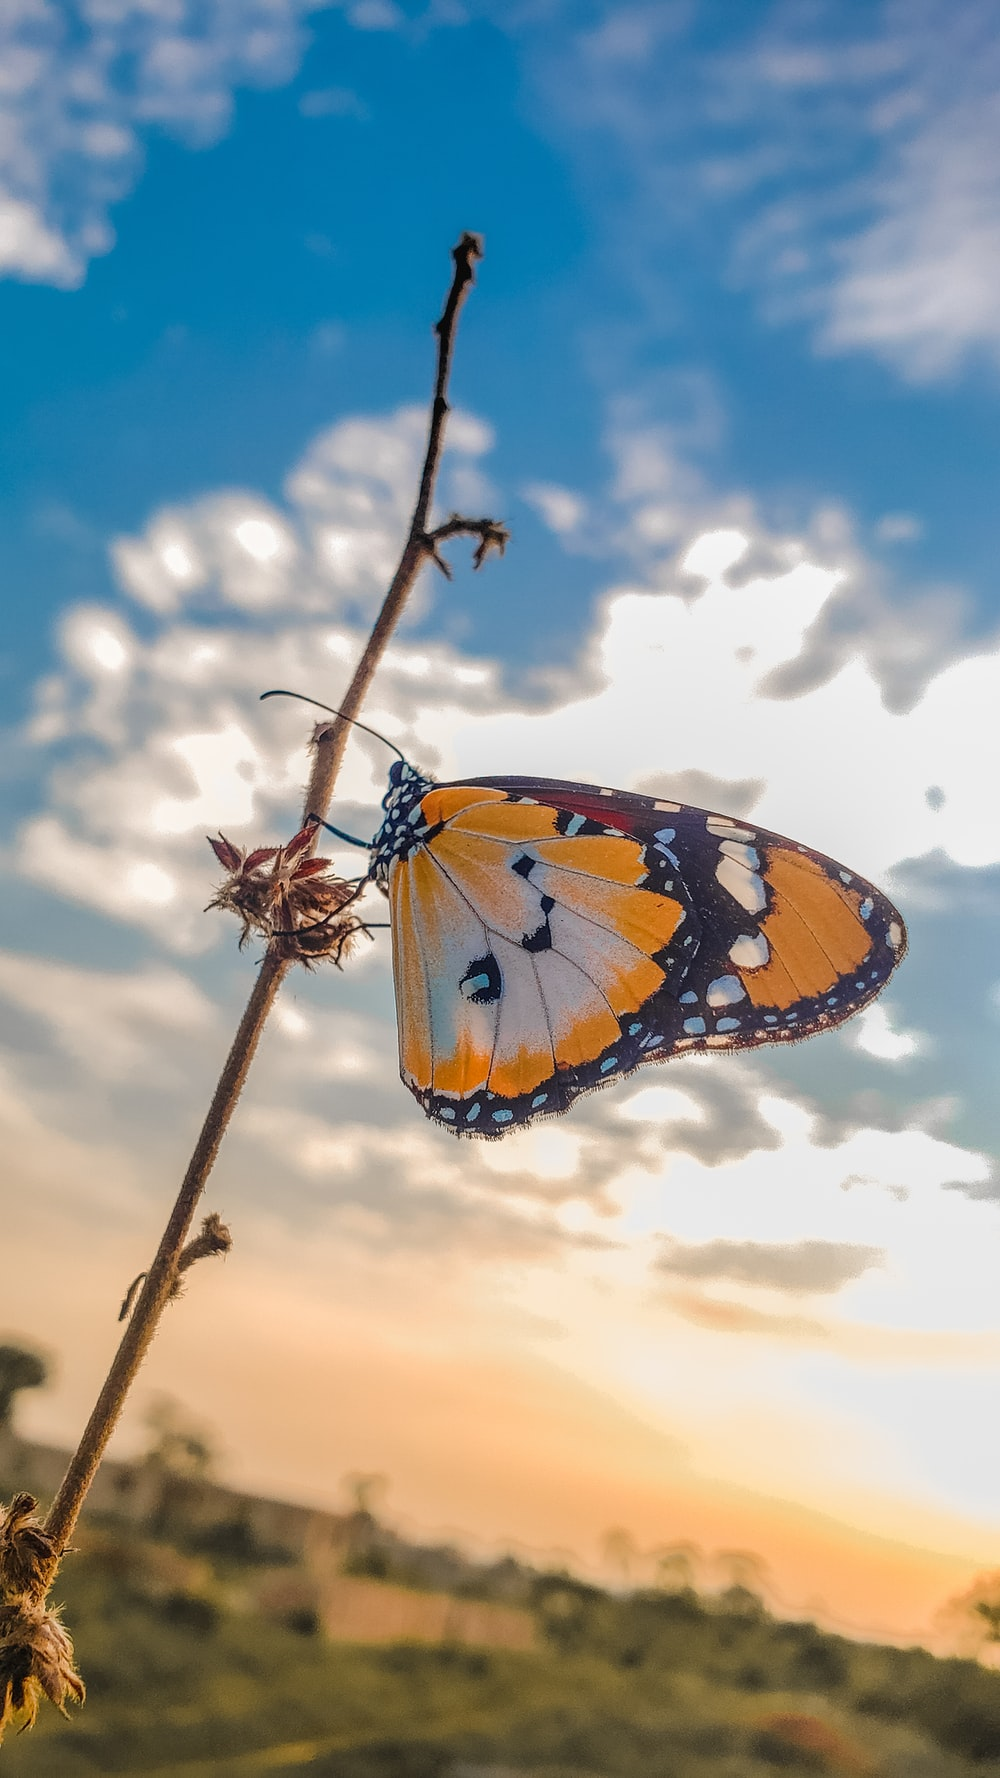 brown and black butterfly on brown tree branch under white clouds during daytime